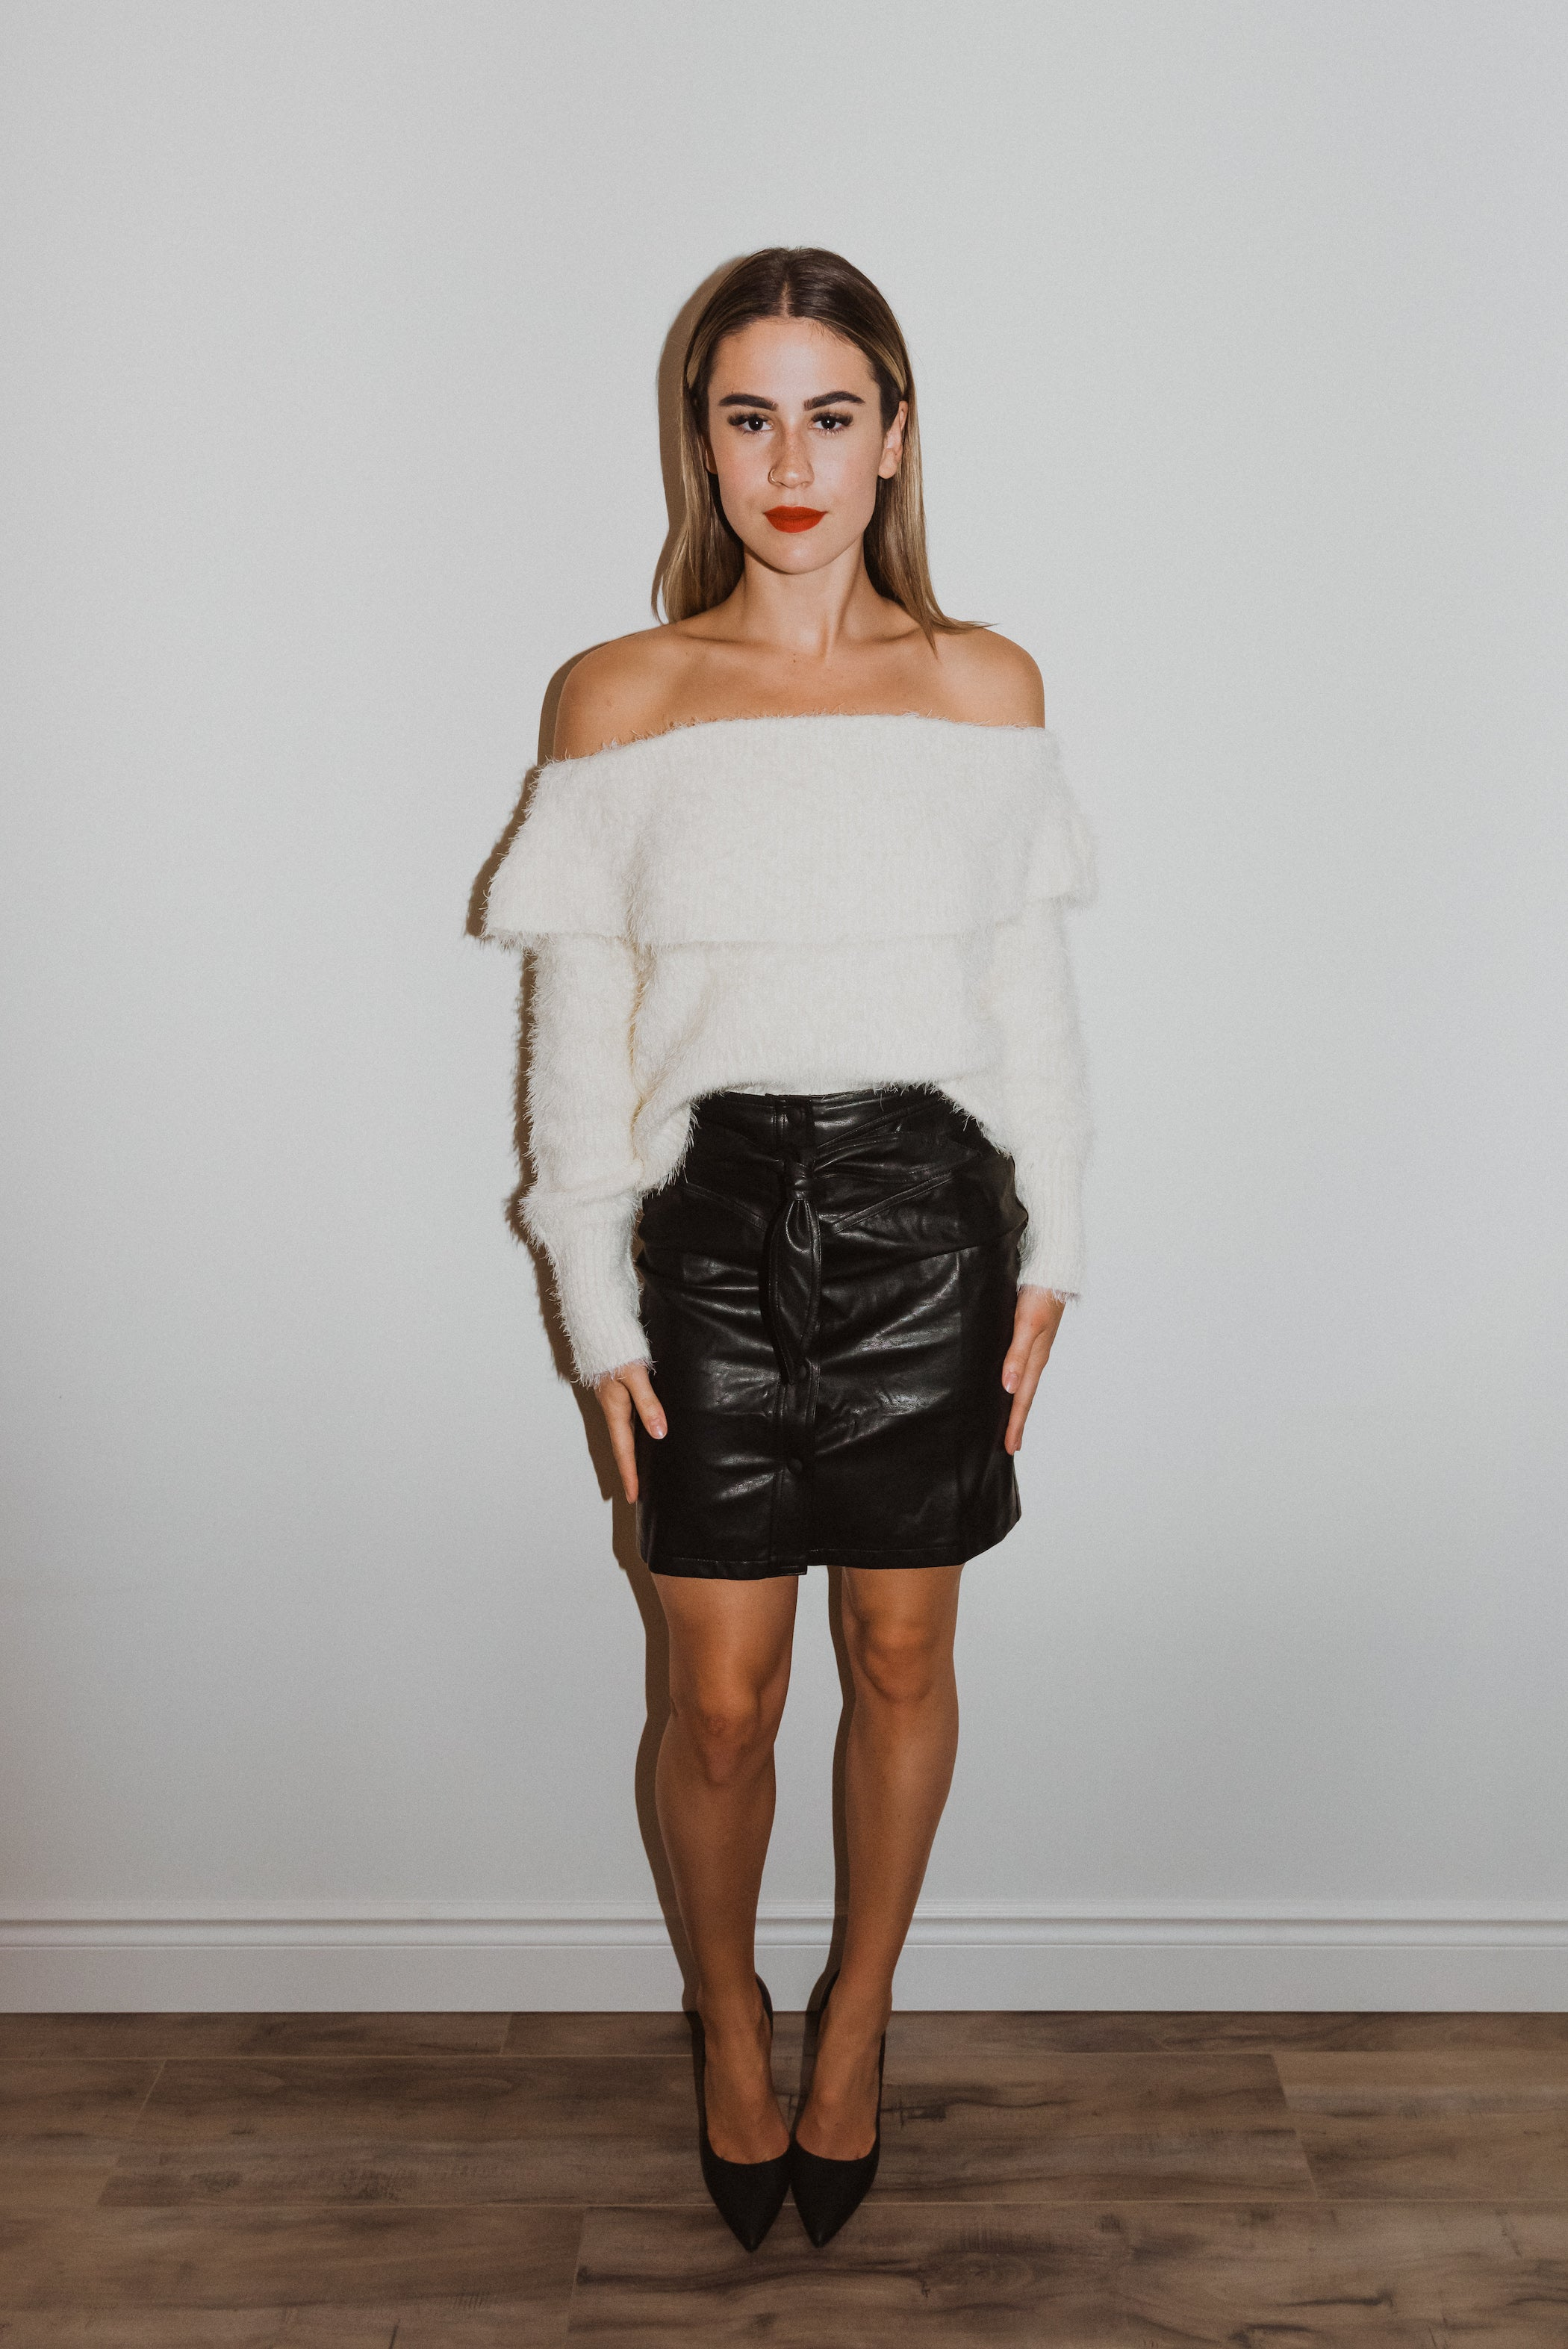 xSOLD OUTx You Can Be Both Off the Shoulder Eyelash Sweater